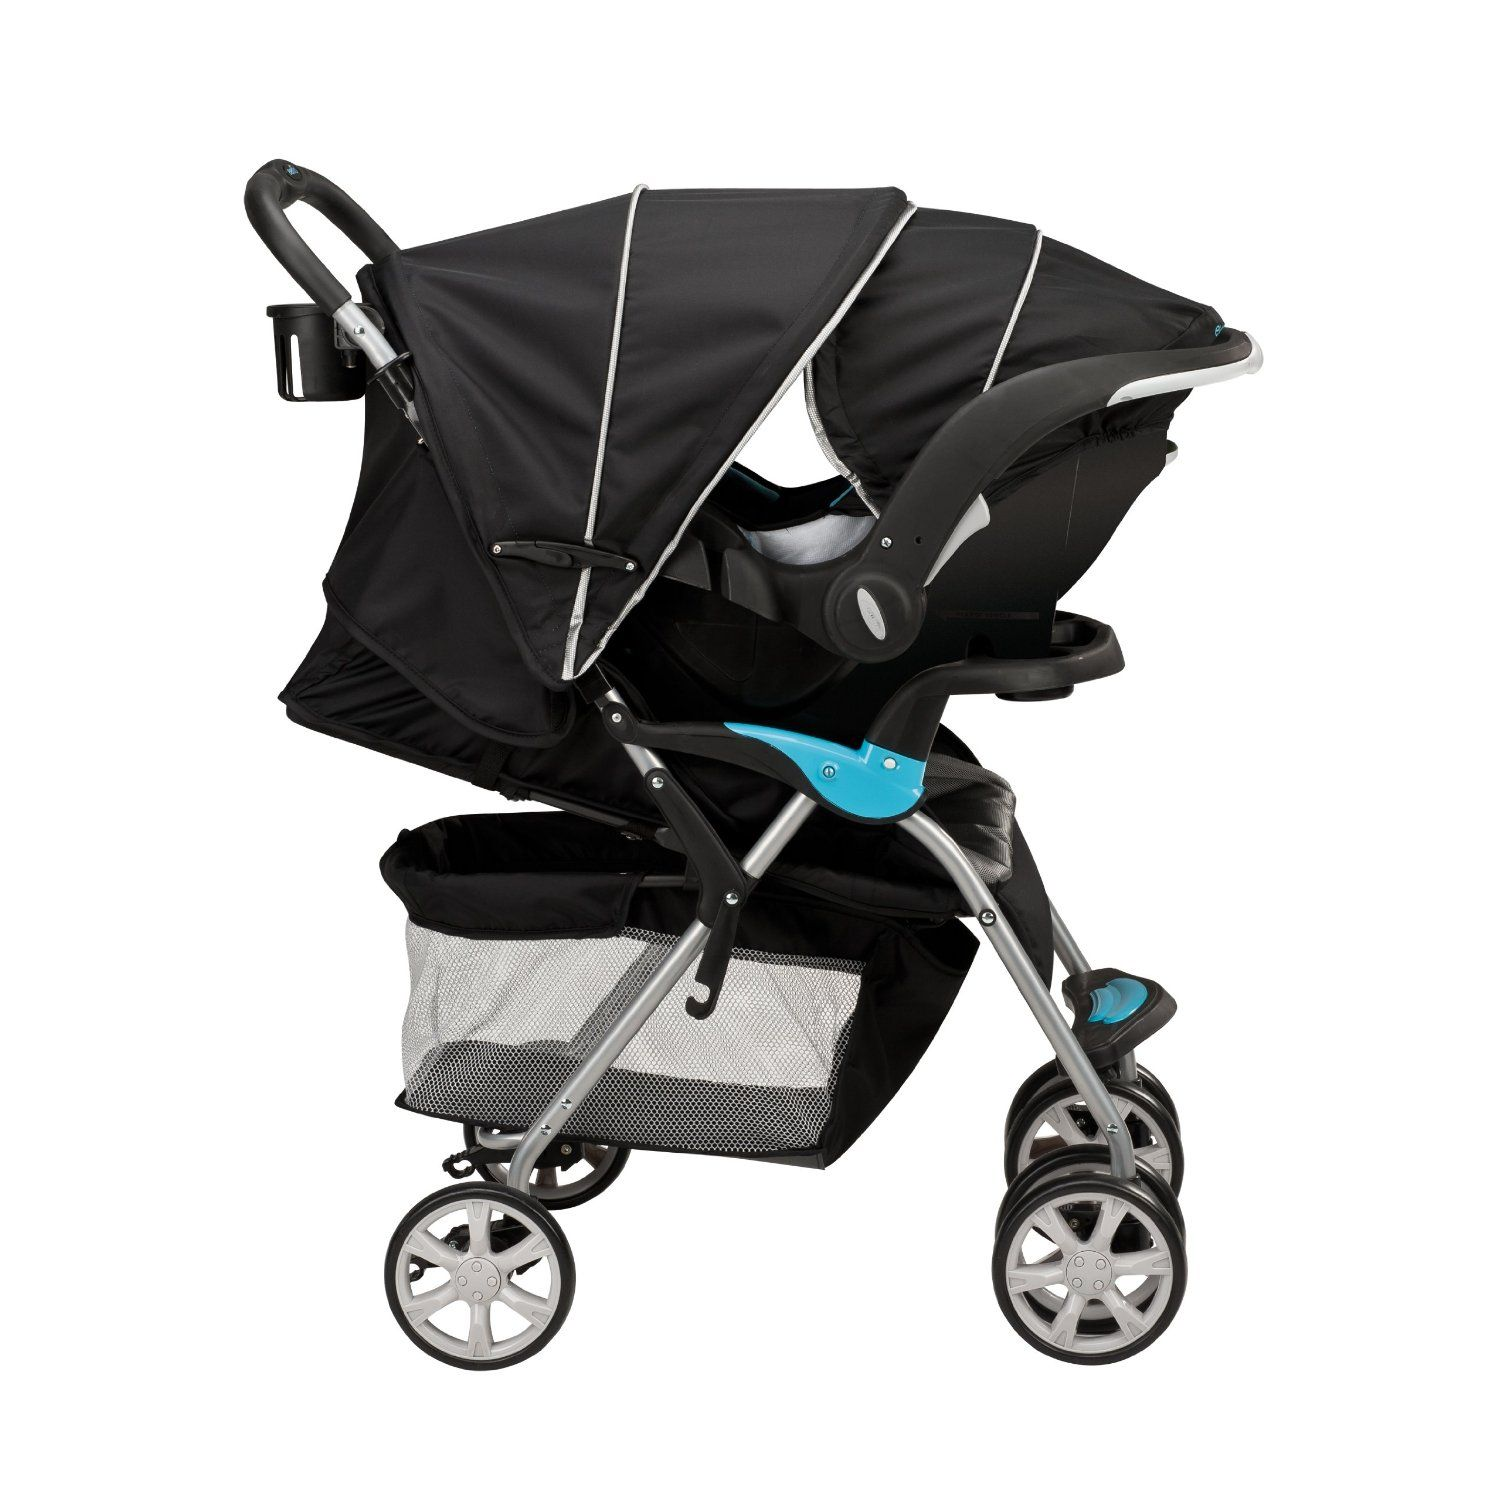 Amazon.com: Evenflo FeatherLite 200 Stroller with Embrace ...